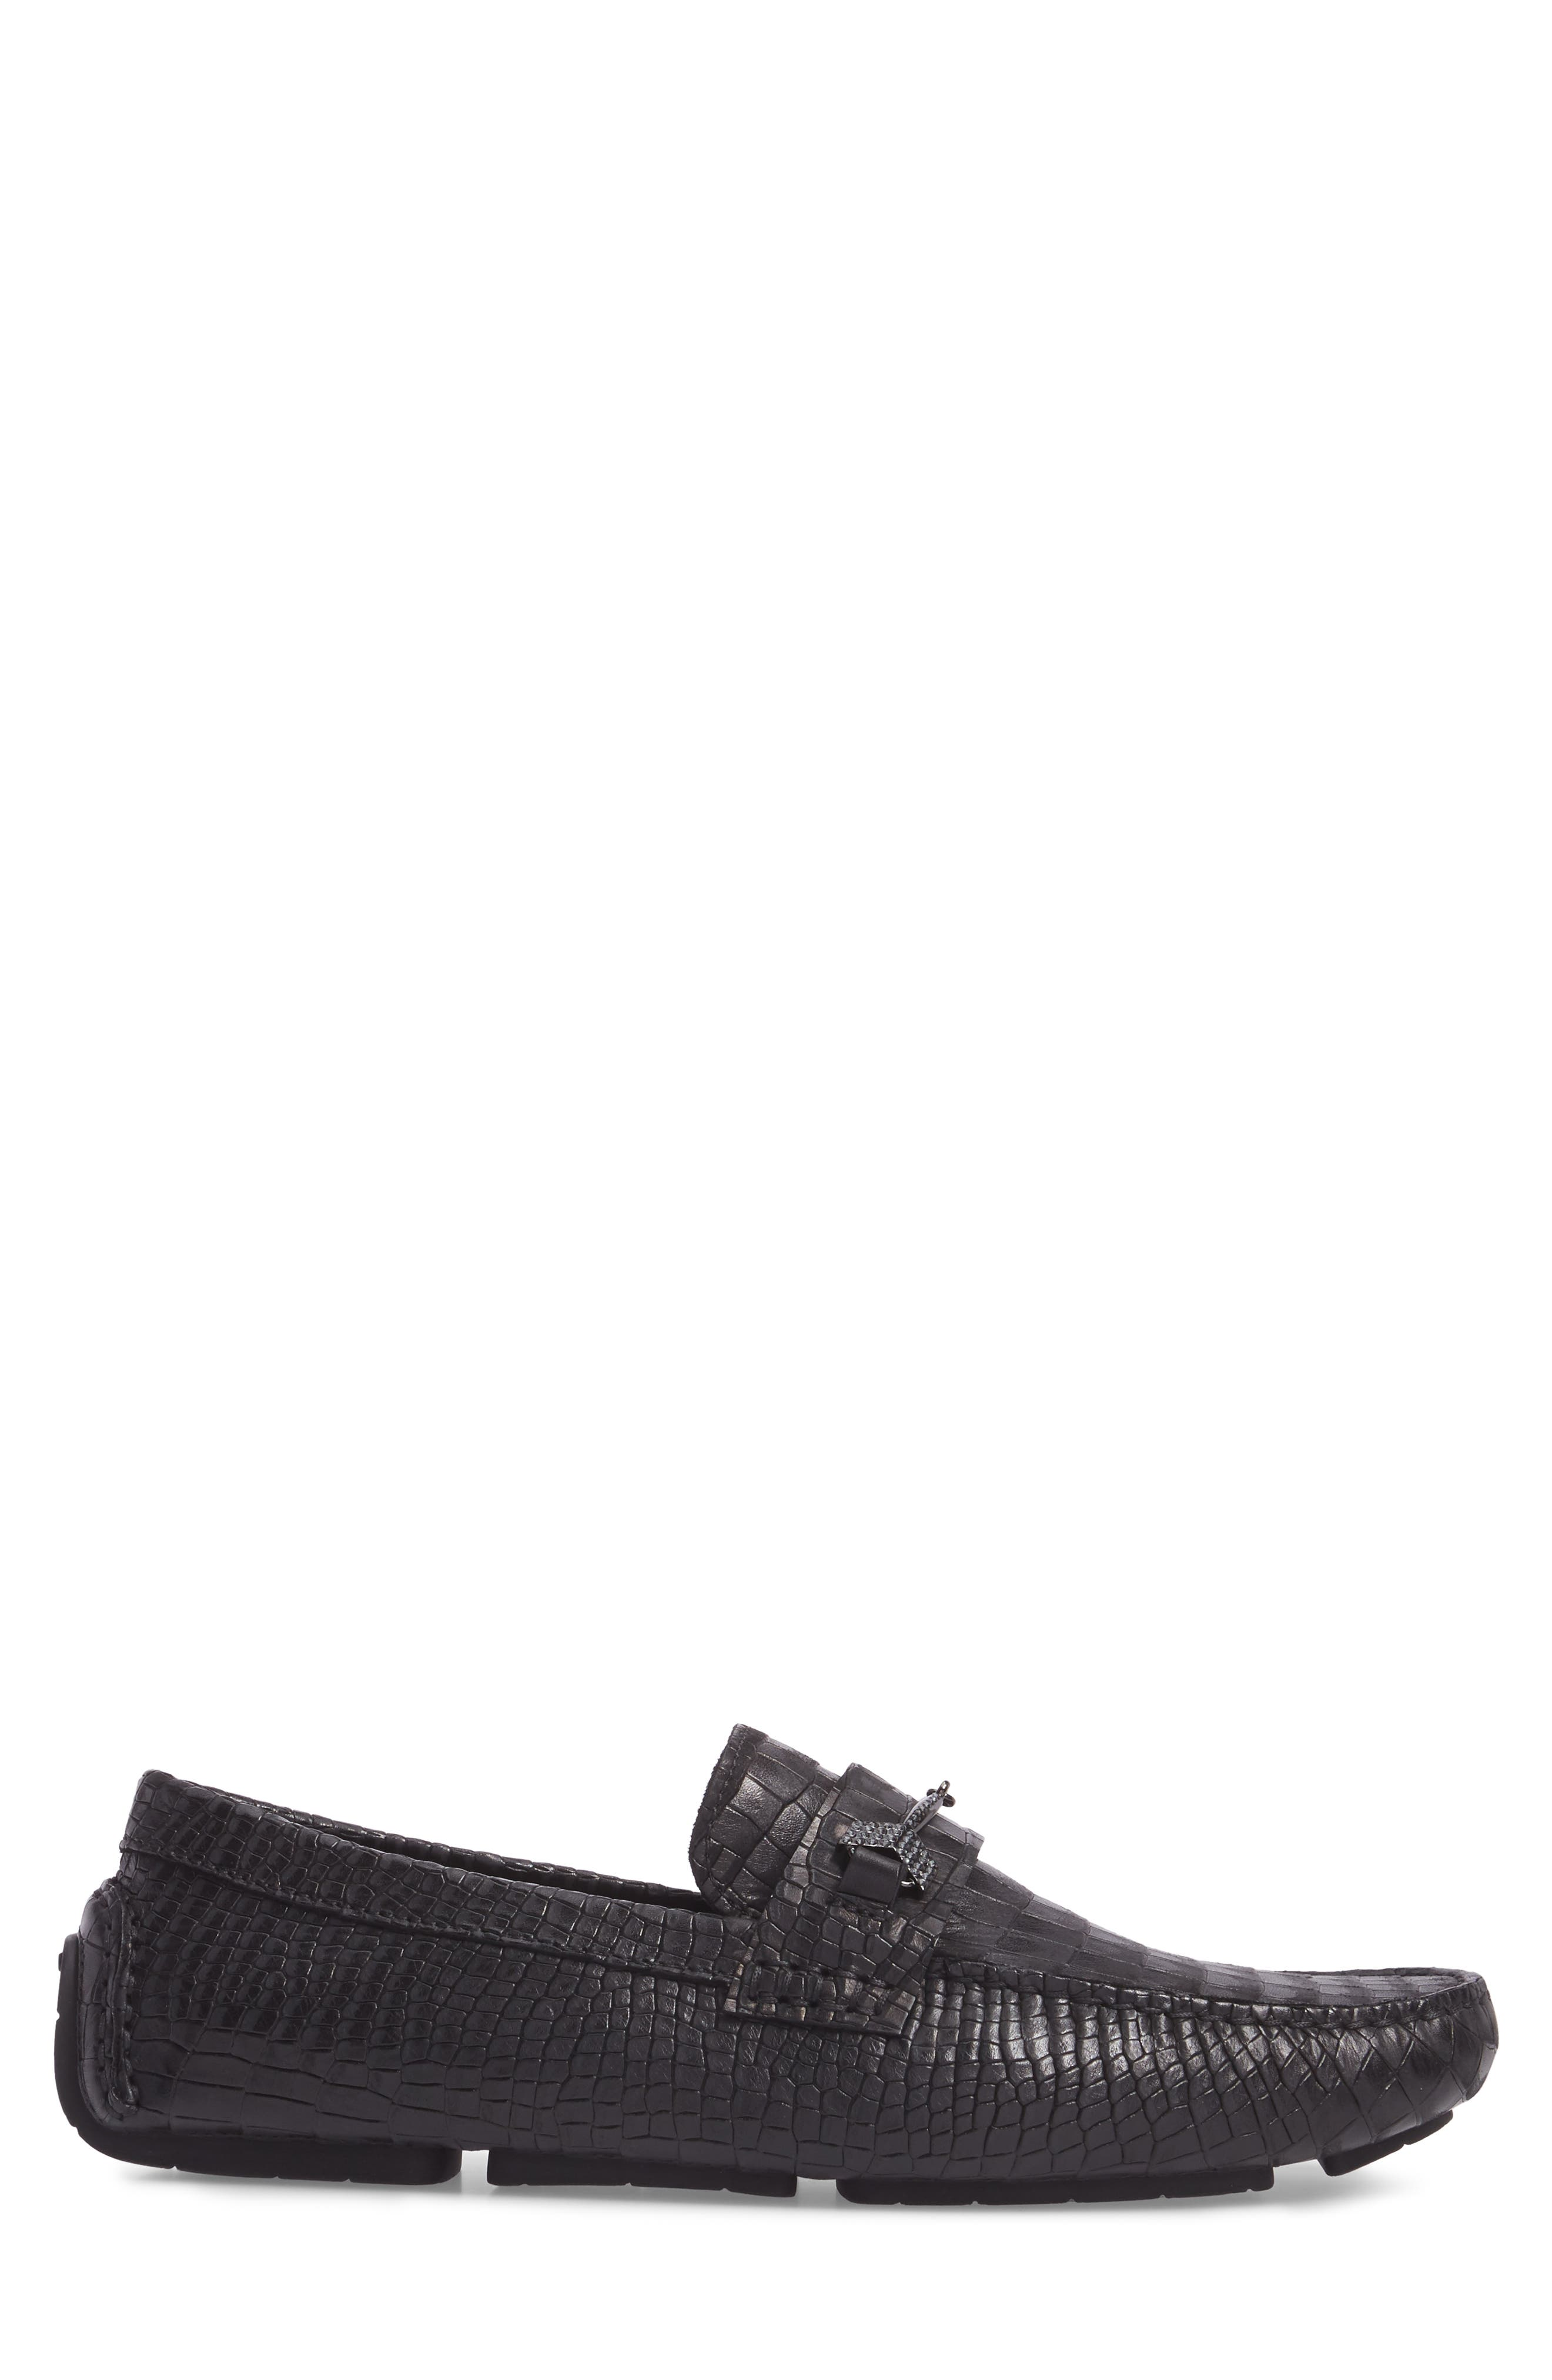 Brewer Croc Textured Driving Loafer,                             Alternate thumbnail 3, color,                             Black